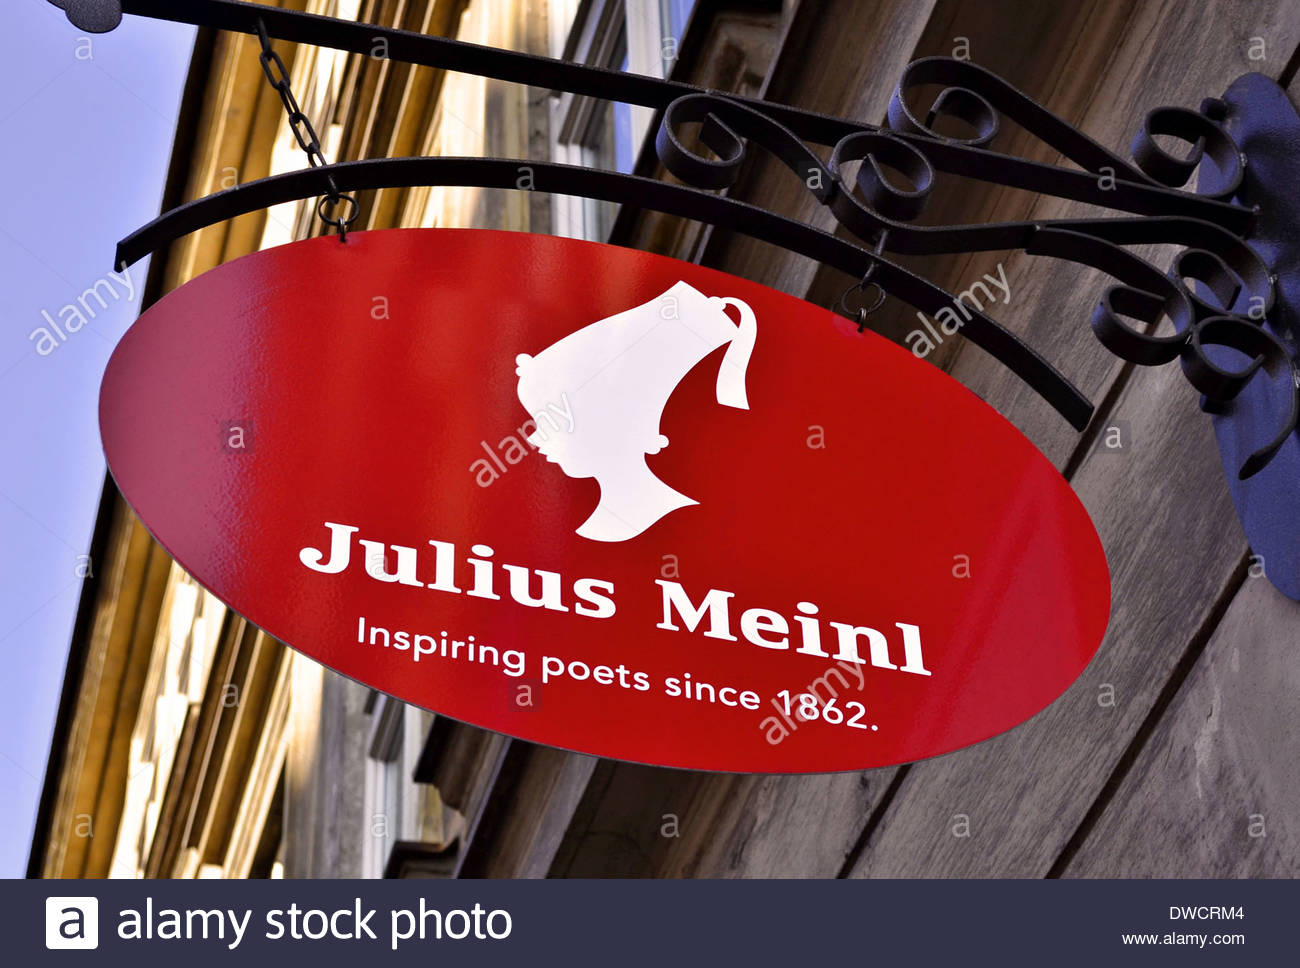 Julius Meinl - Austrian coffee and gourmet products manufacturer logo sign - Stock Image